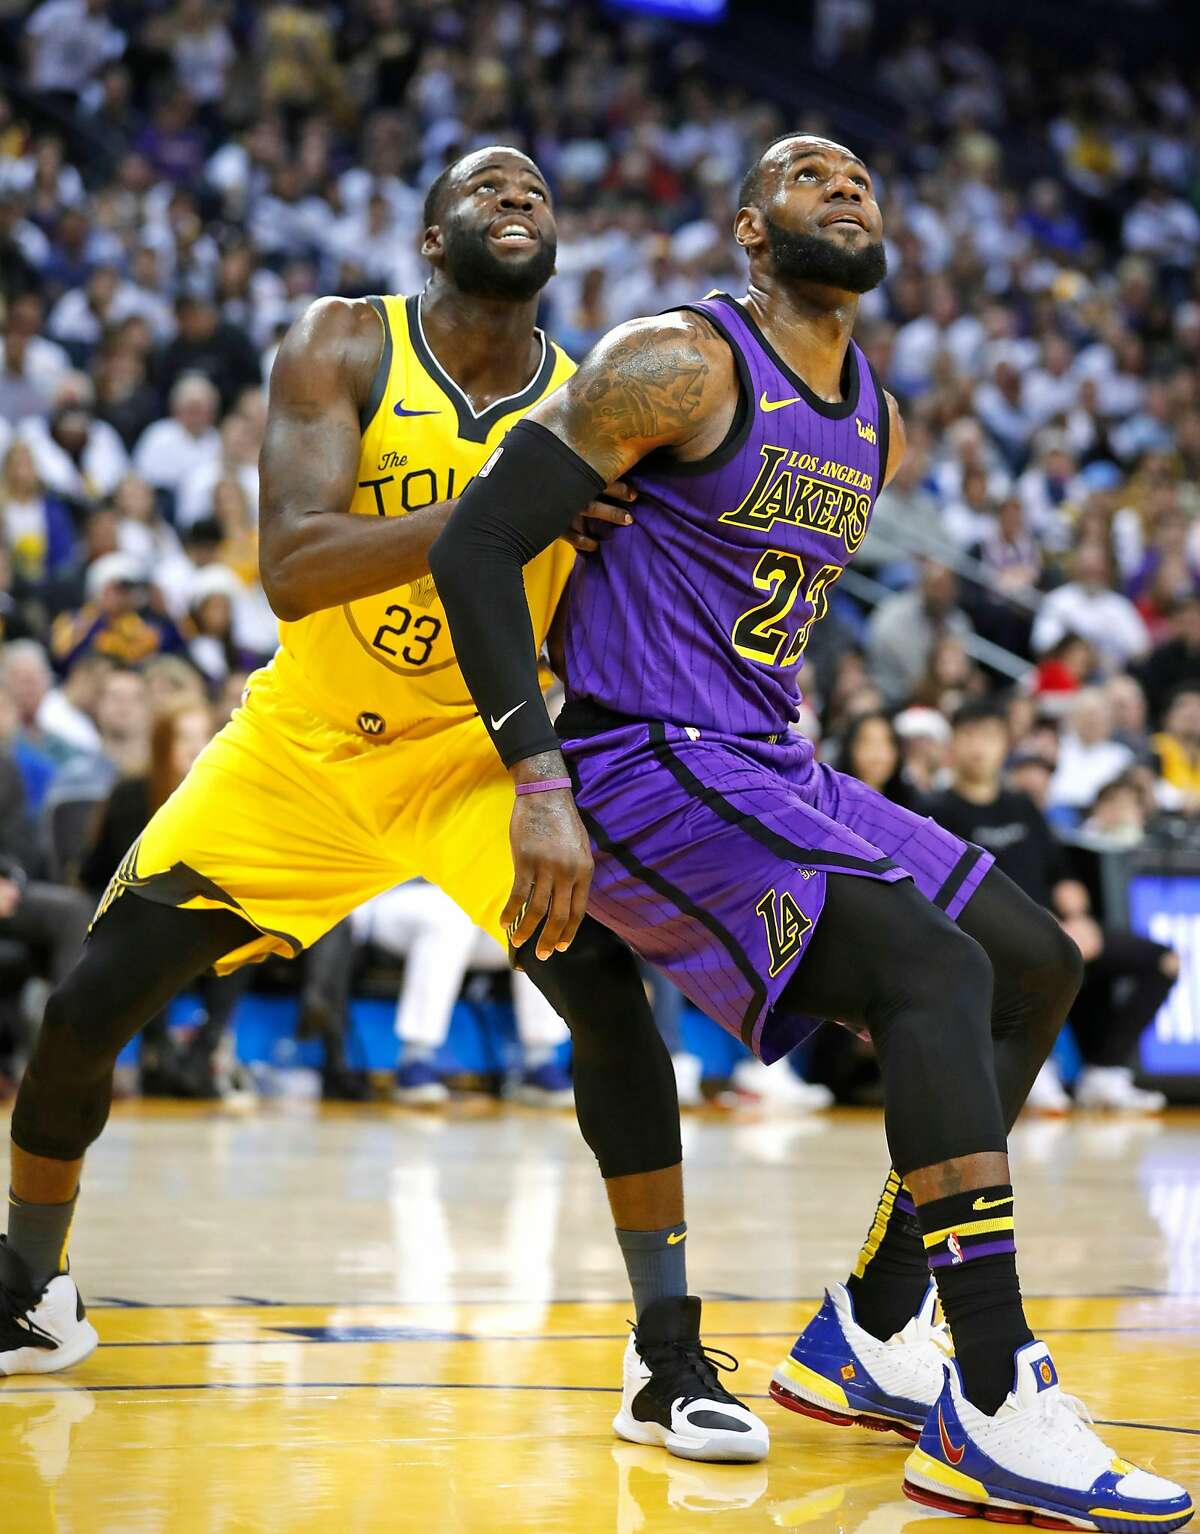 Los Angeles Lakers' LeBron James and Golden State Warriors' Draymond Green vie fro rebound position in 2nd quarter during NBA game at Oracle Arena in Oakland, Calif. on Tuesday, December 25, 2018.